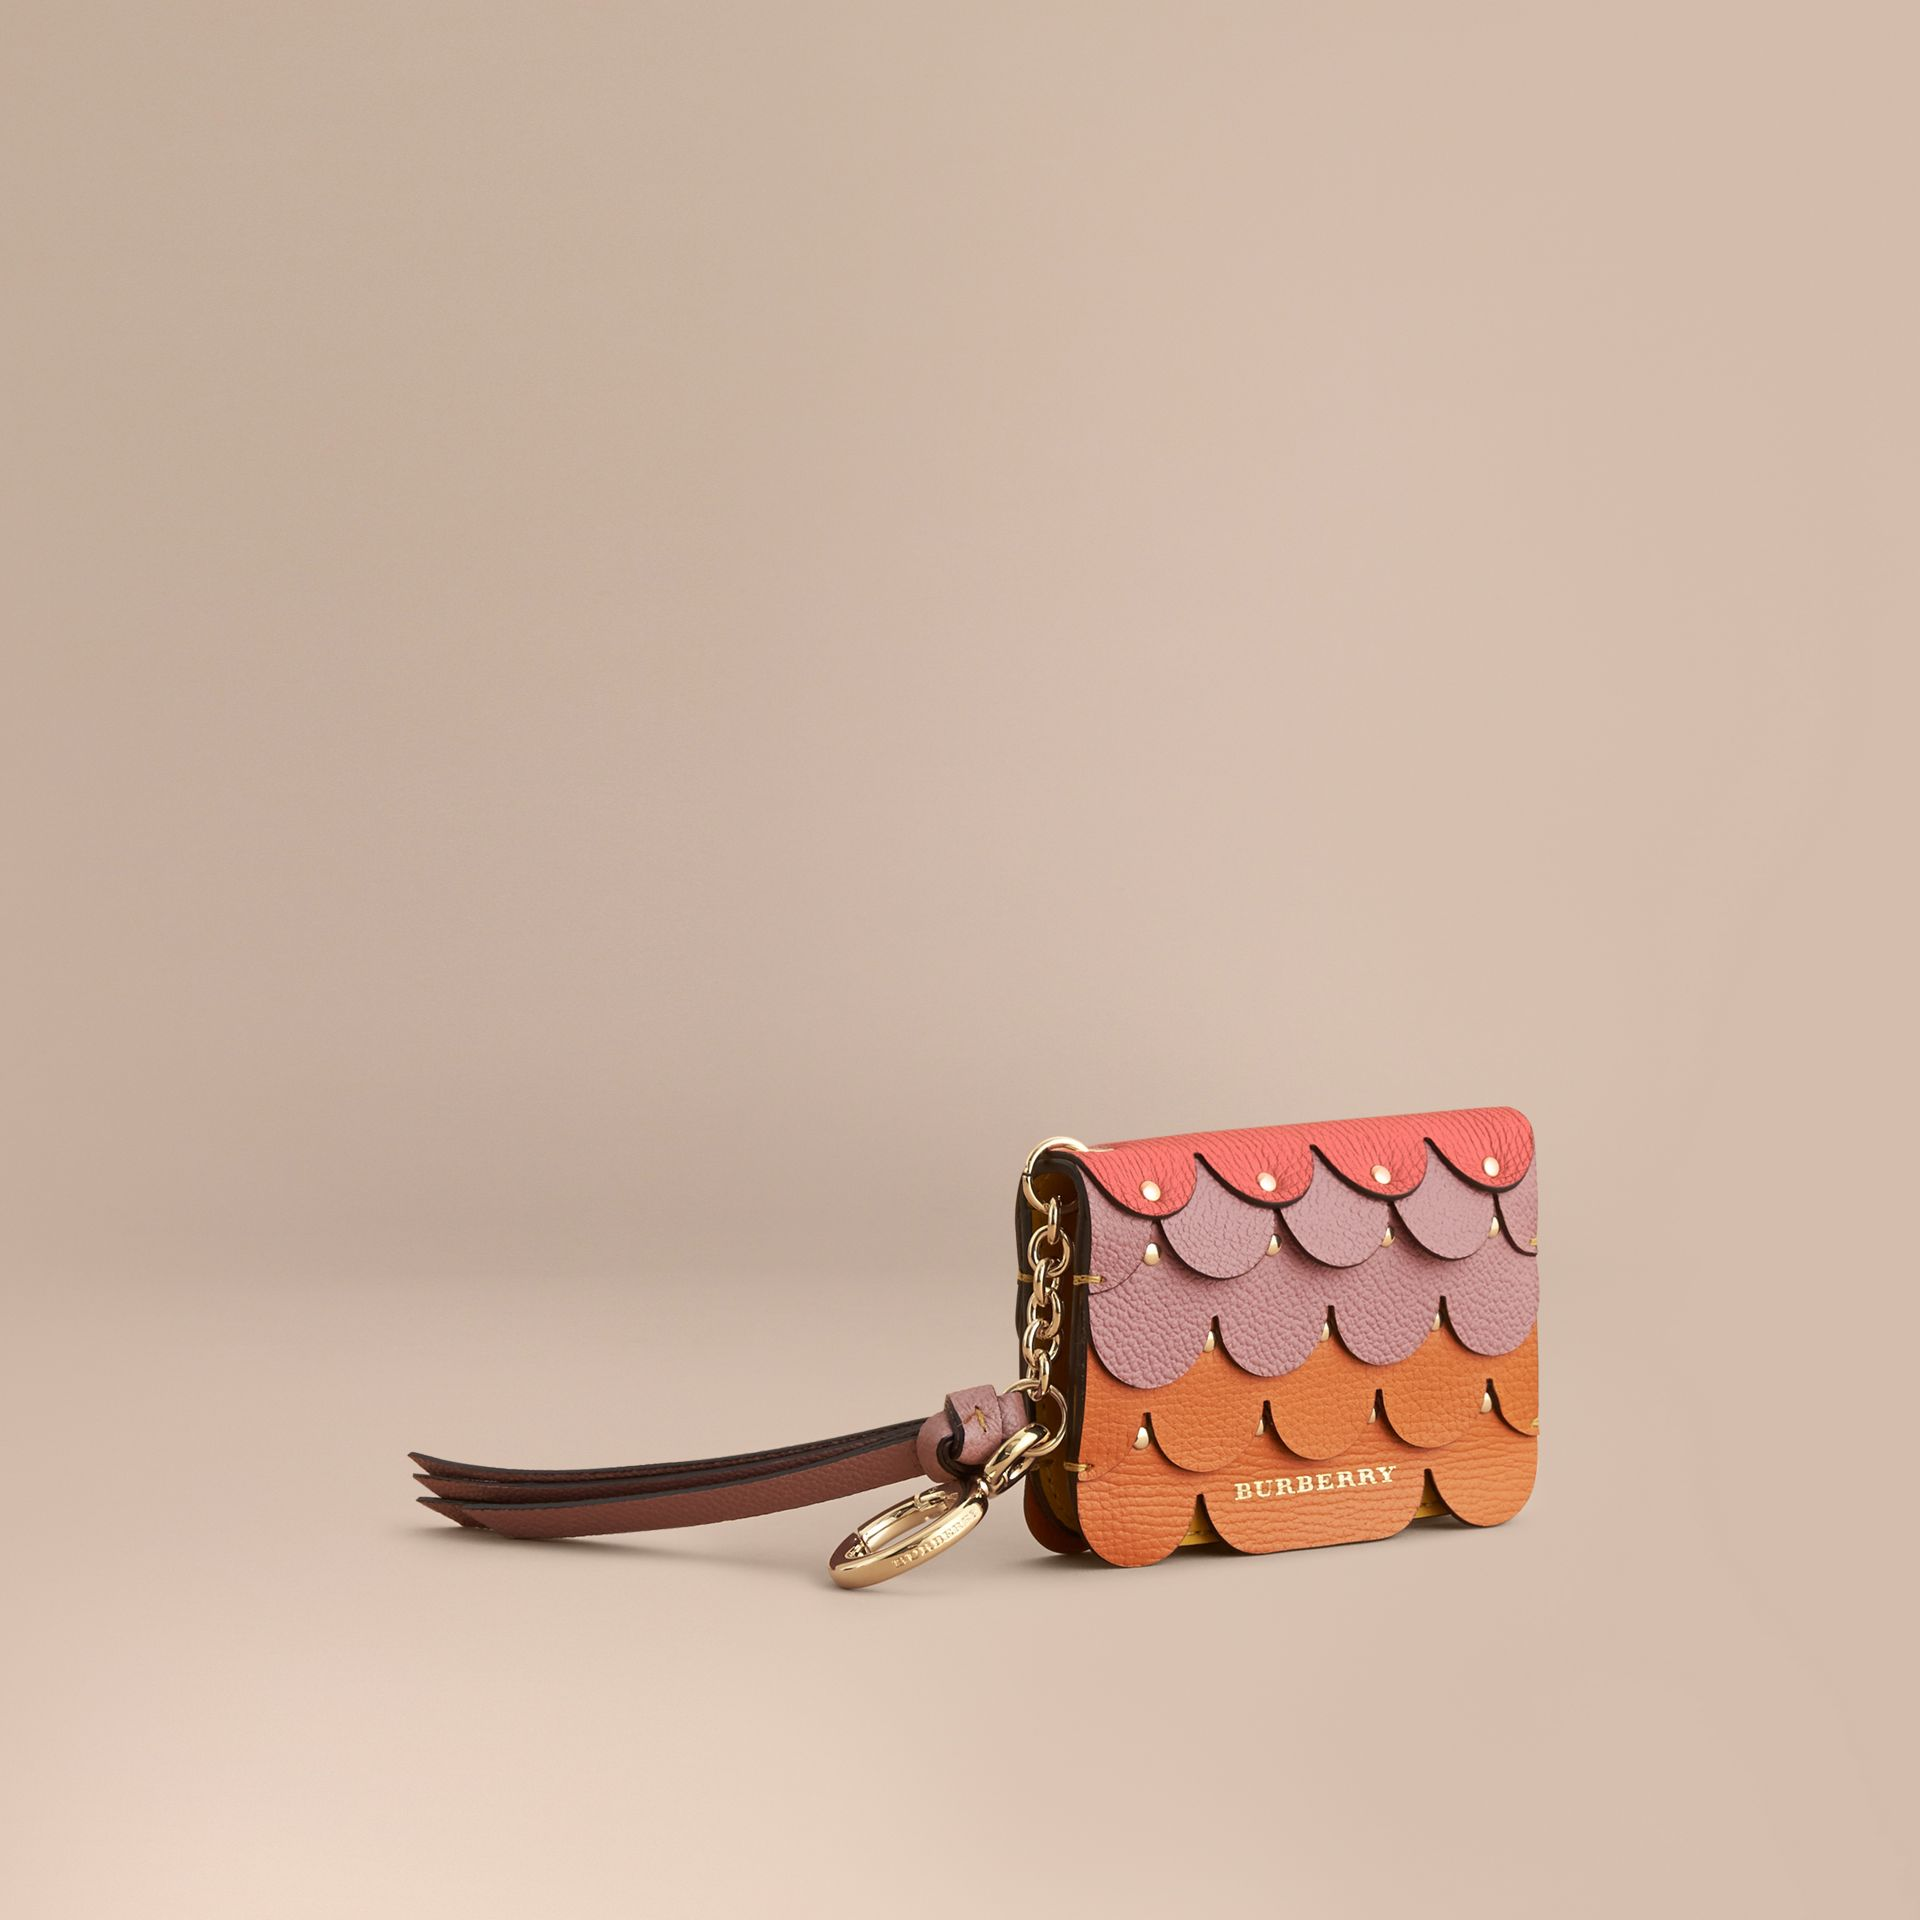 Scalloped Leather Card Case in Bright Straw - Women | Burberry - gallery image 1